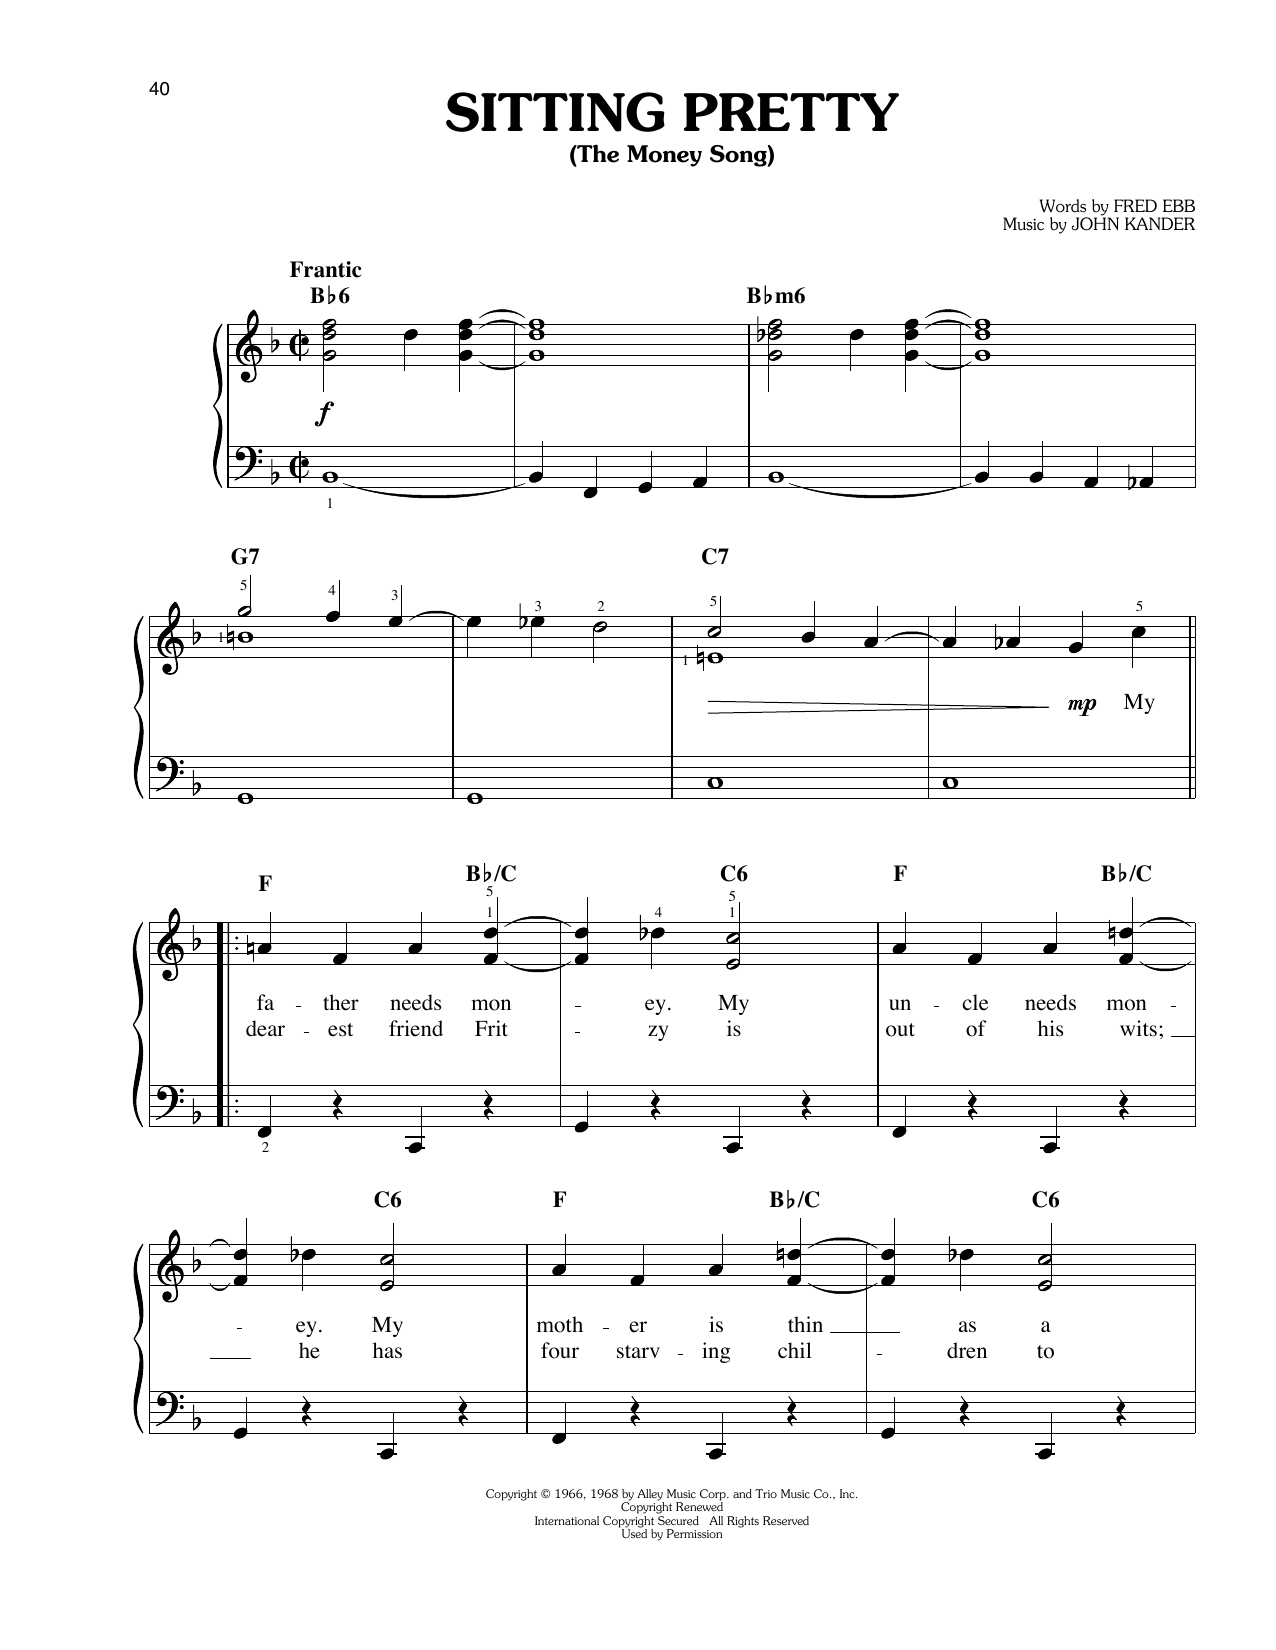 Sitting Pretty (The Money Song) Sheet Music